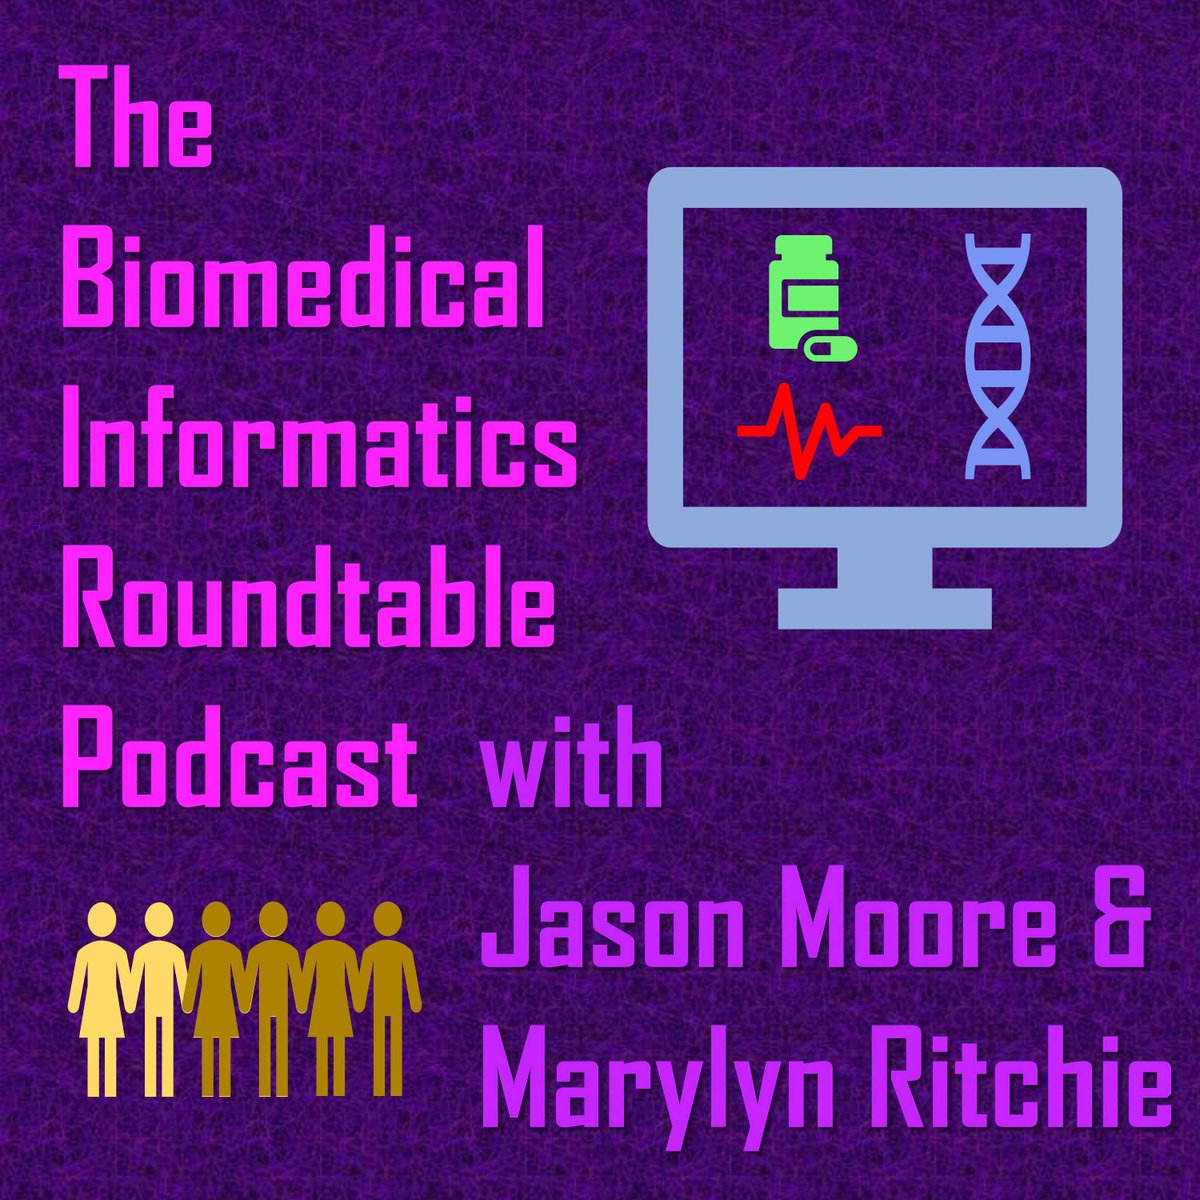 test Twitter Media - The Biomedical Informatics Roundtable Podcast by @moorejh & @MarylynRitchie. Tune in for discussion about a wide variety of #informatics & #datascience topics. Available on #Apple https://t.co/mMVJLeFVb7, #Spotify https://t.co/uS3usvDCua, & #Soundcloud https://t.co/r0byvgksw4 https://t.co/4TdVk5UoBq